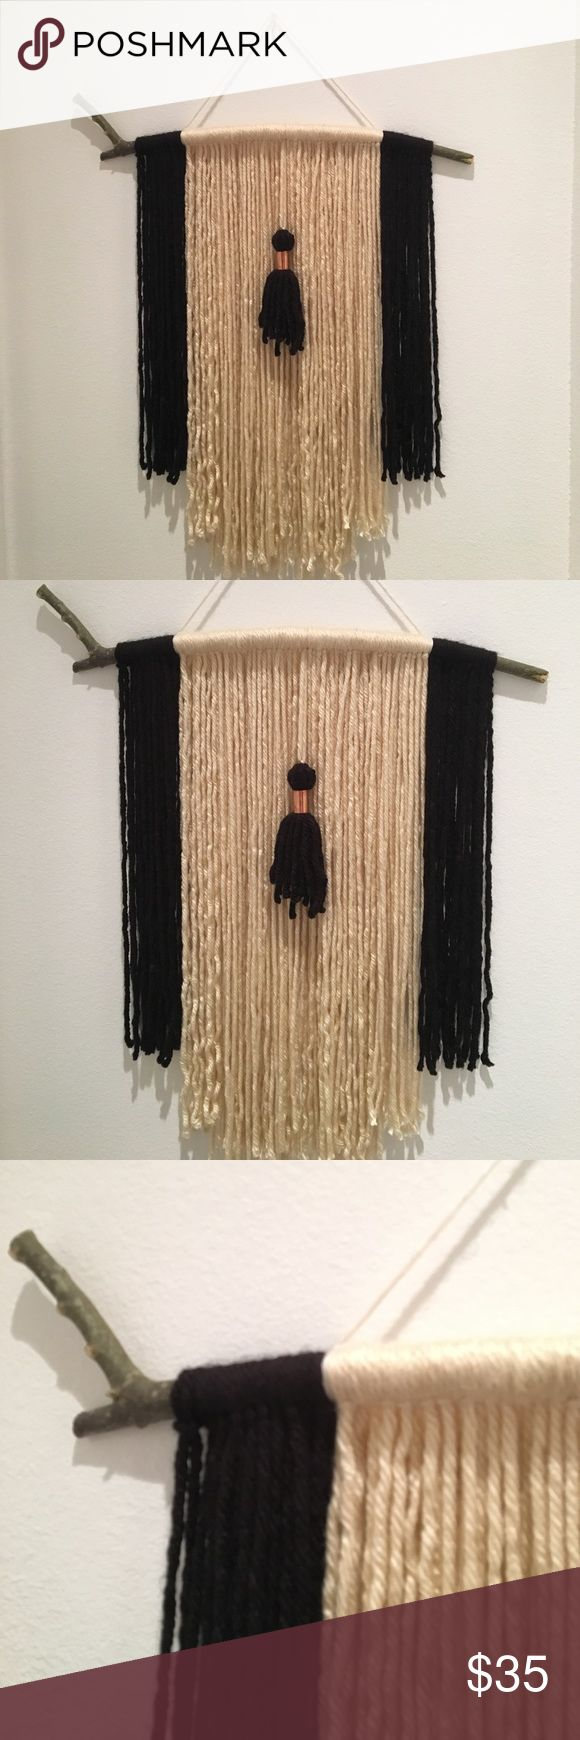 Boho Yarn Wall Art Handmade wall hanging with tassel/copper detail.       2ft W x 3ft L. *Not Free People, tagged for exposure* Free People Accessories